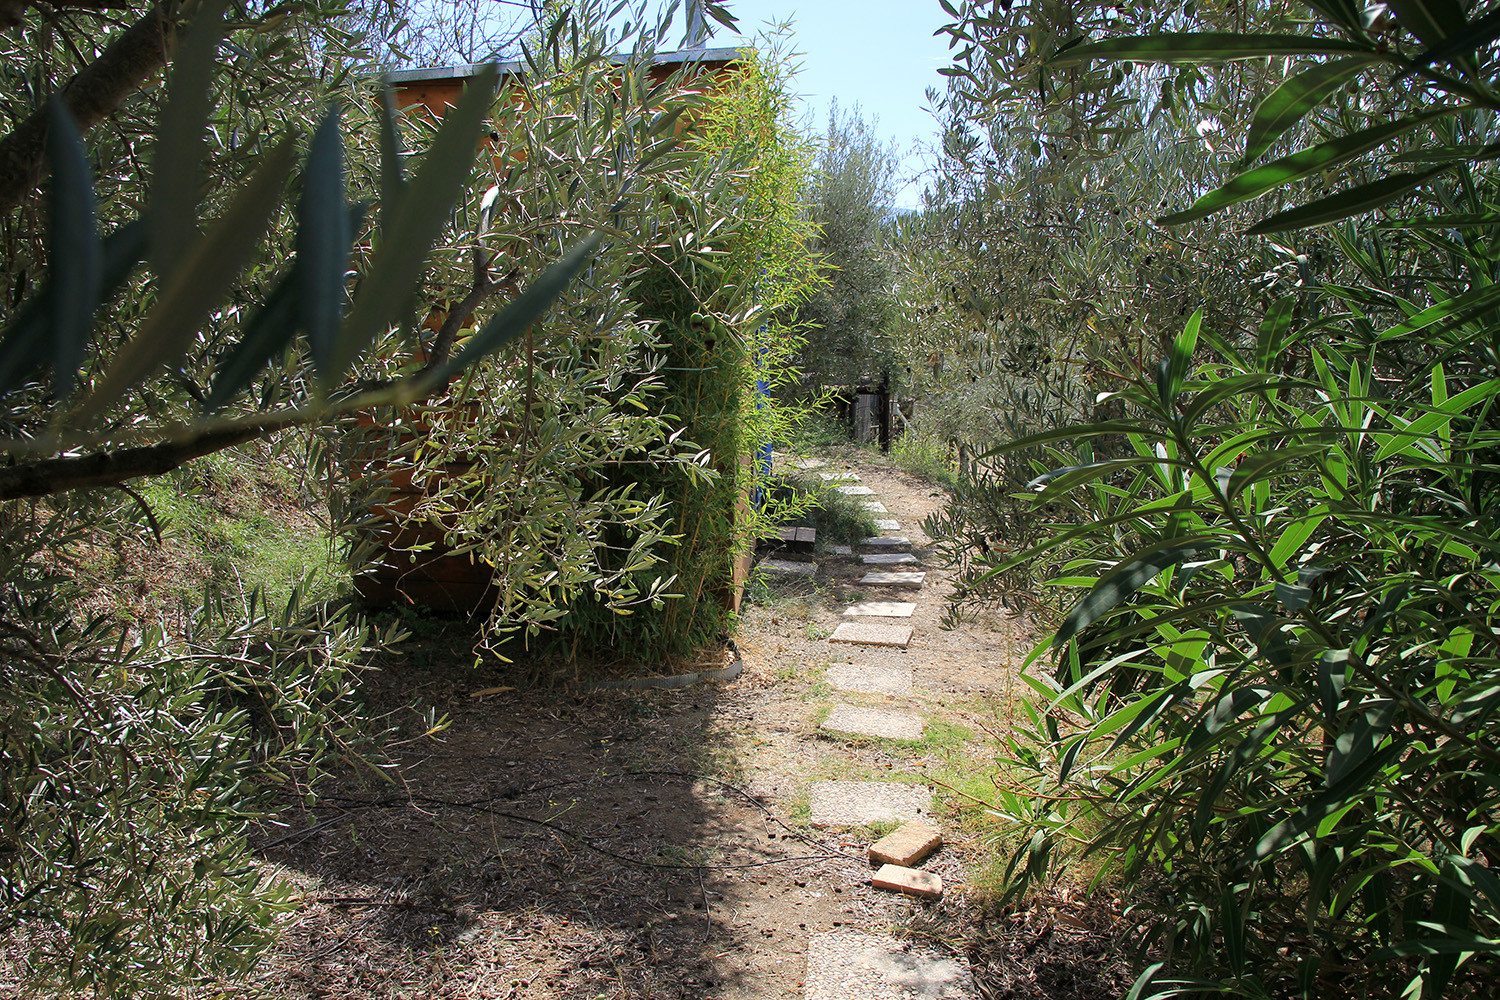 The path to the compost poo